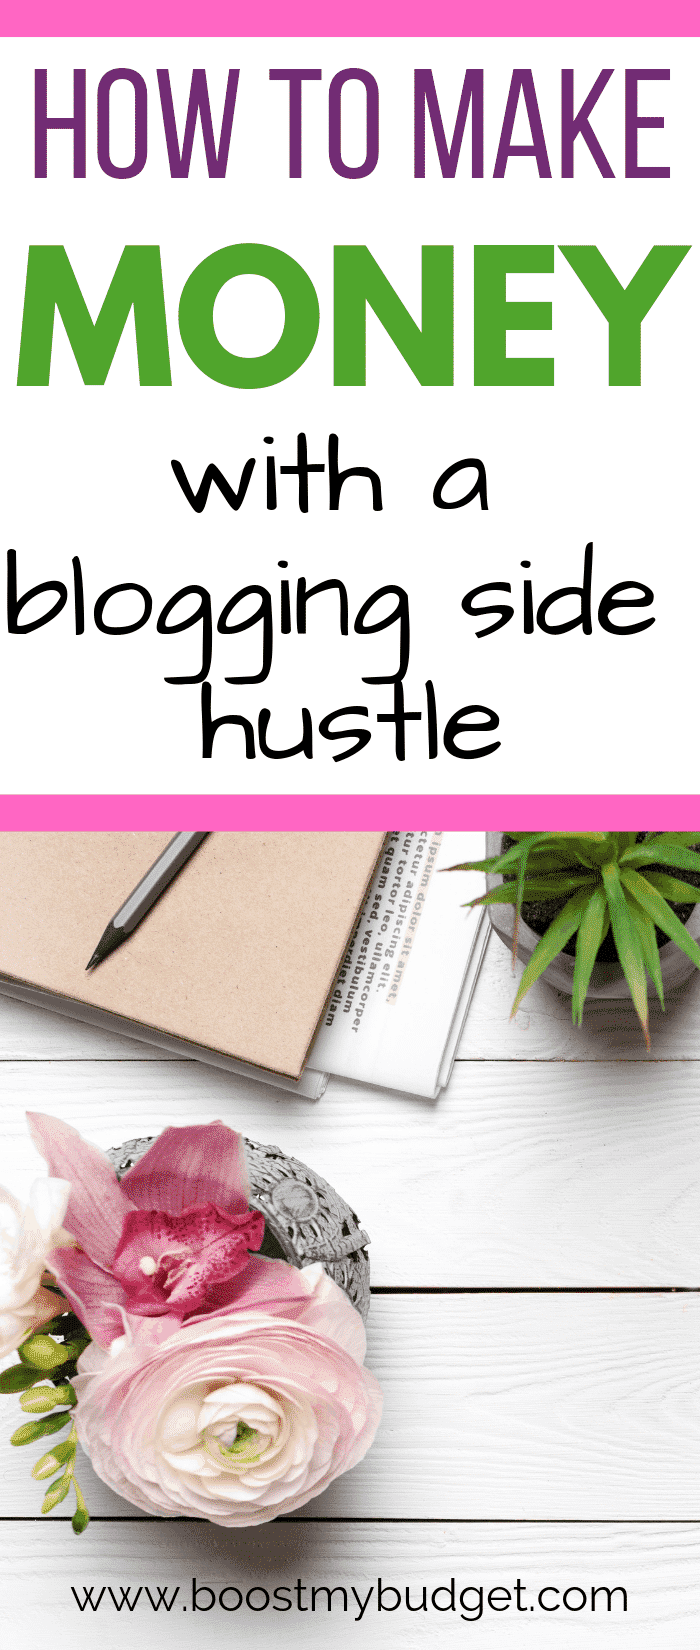 How to make money blogging as a side hustle! You don't need to quit your job to be a blogger - here's how to make it work.